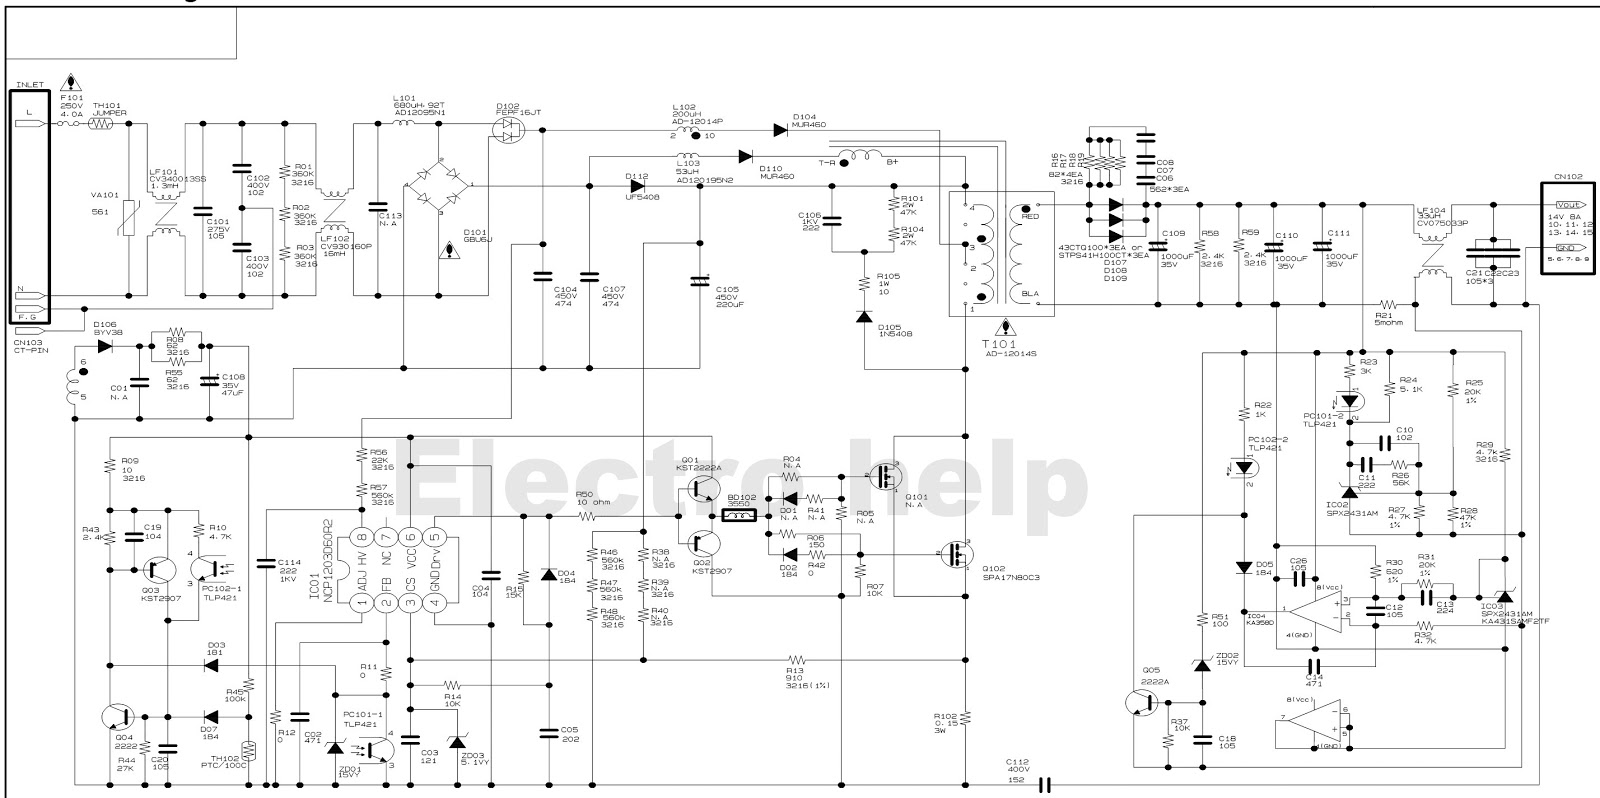 Hyundai Hql260wr Image Quest Lcd Tv Smps Circuit Diagram And Pwb